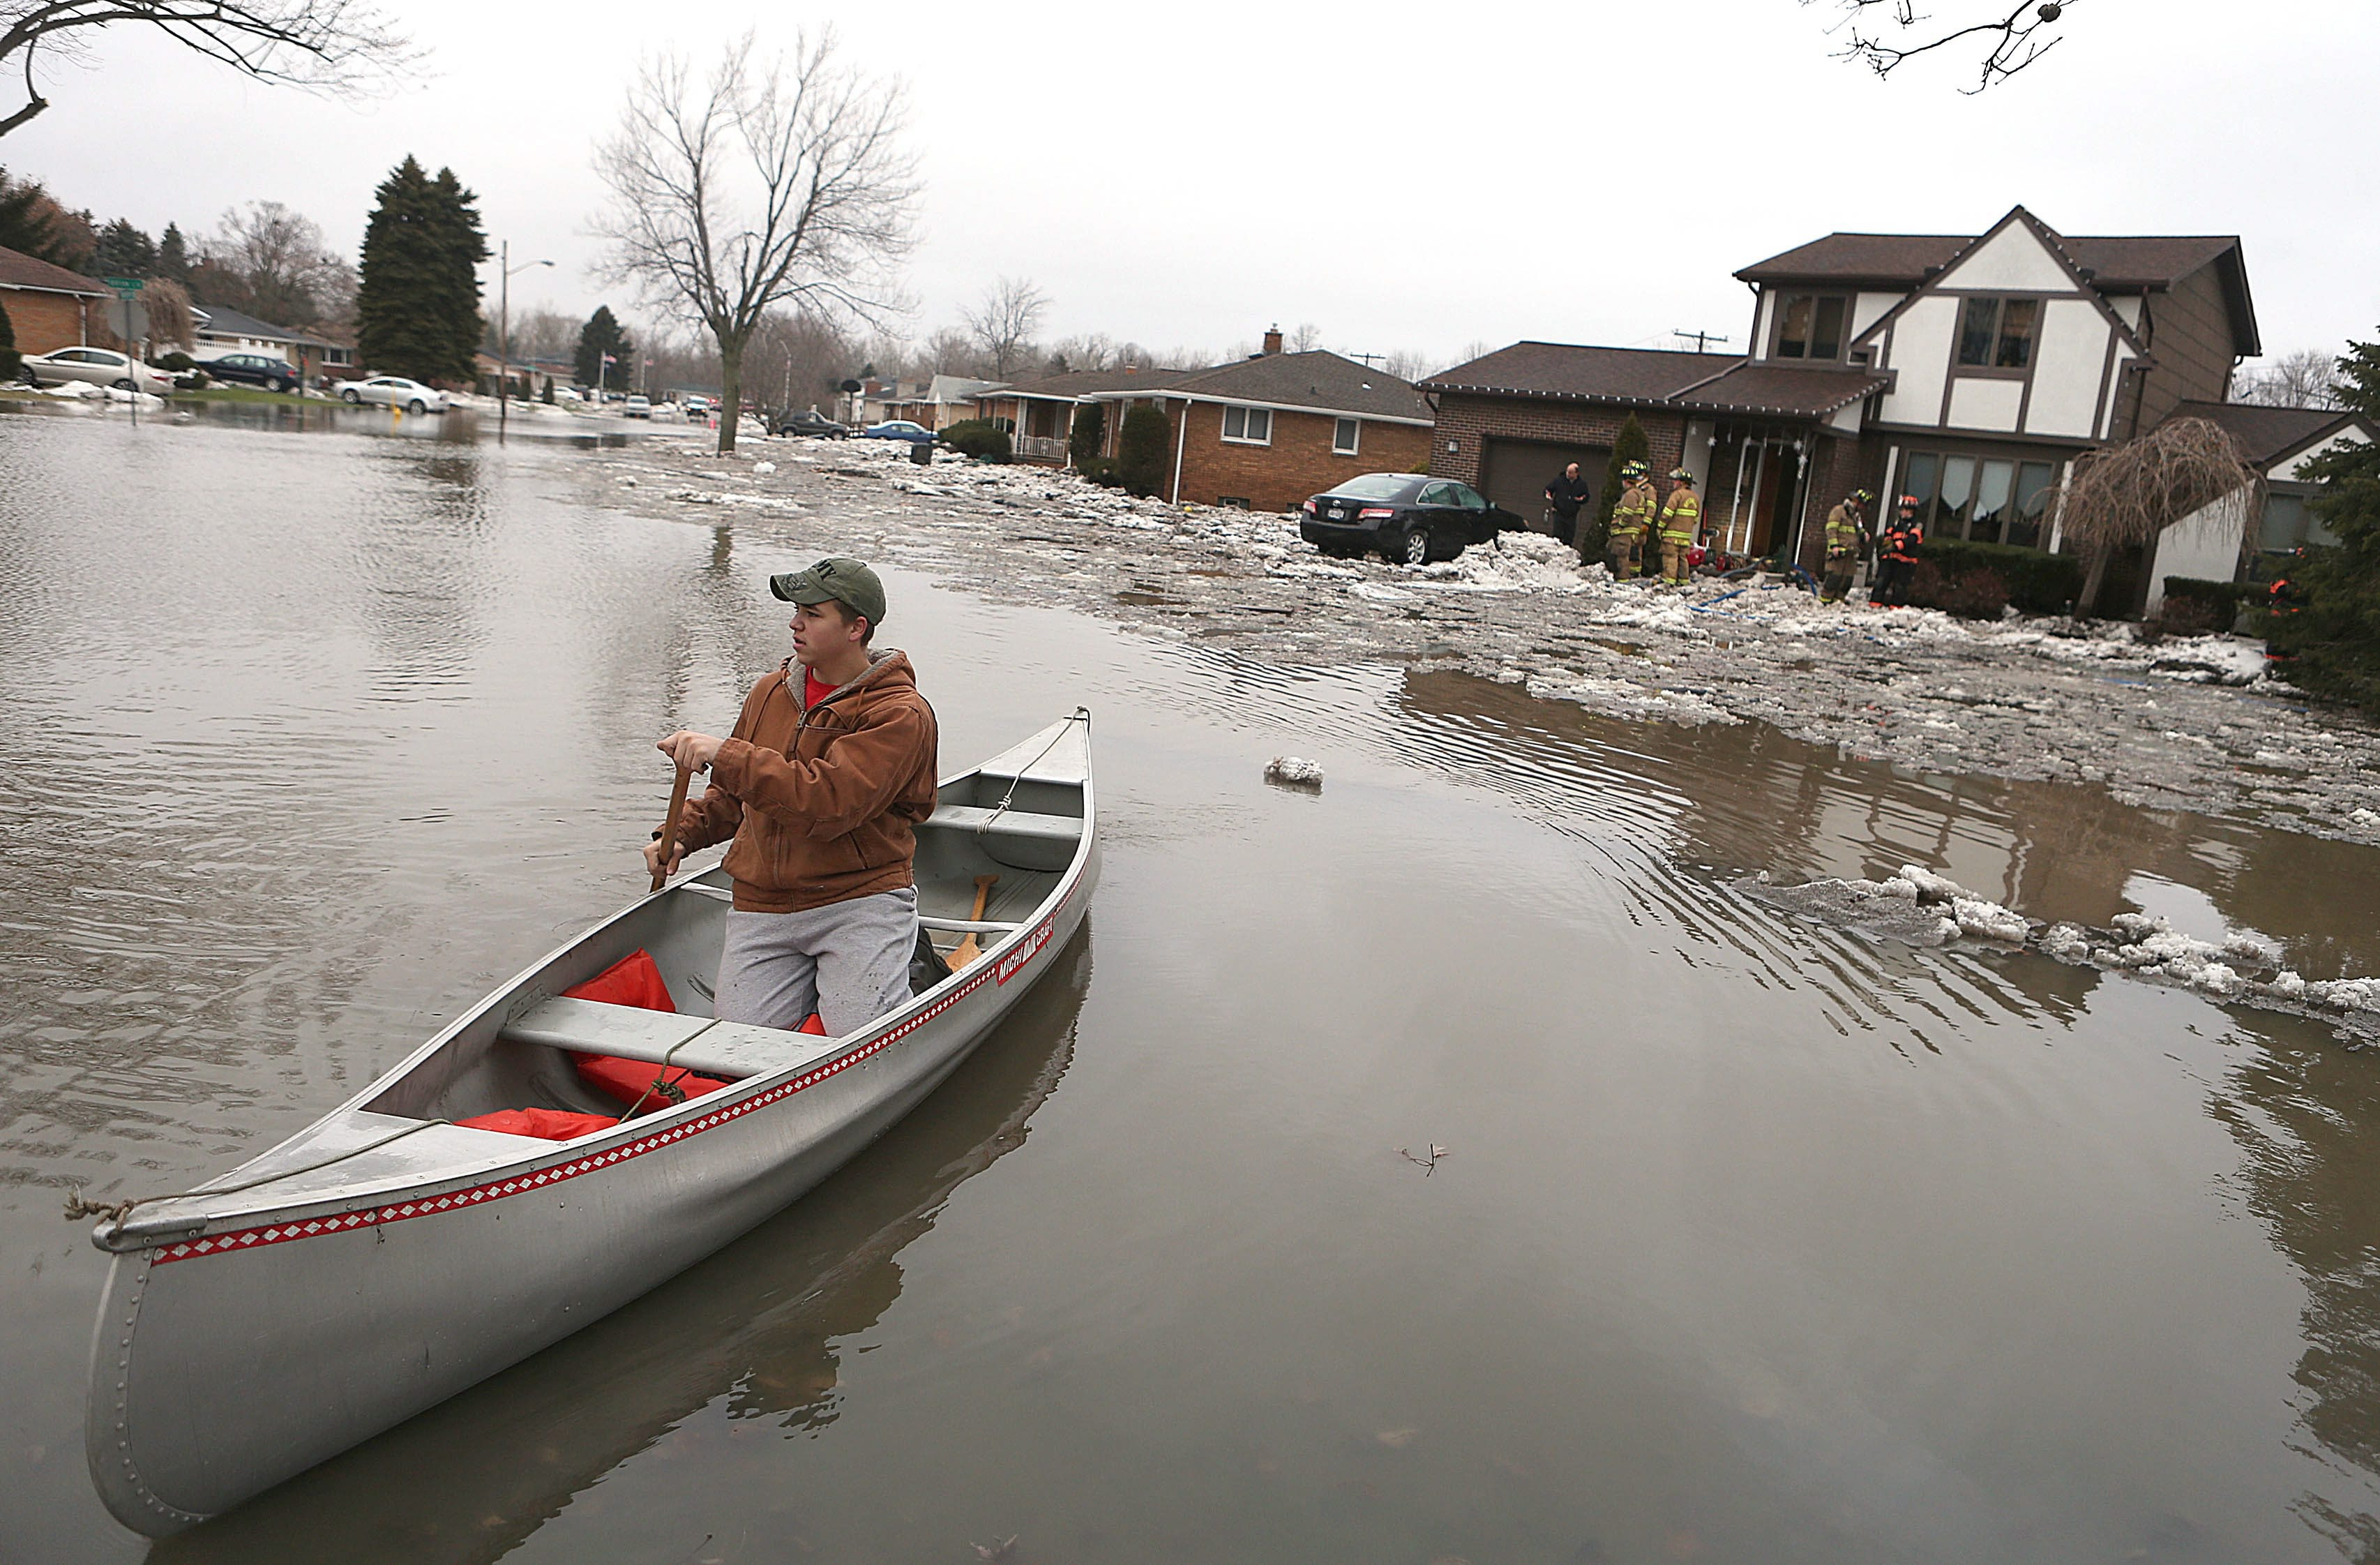 Ben Lang, of Elma, paddled a canoe down Brian Lane to check on the welfare of his grandmother in the flooded Lexington Green neighborhood in January 2014. (Robert Kirkham/Buffalo News file photo)